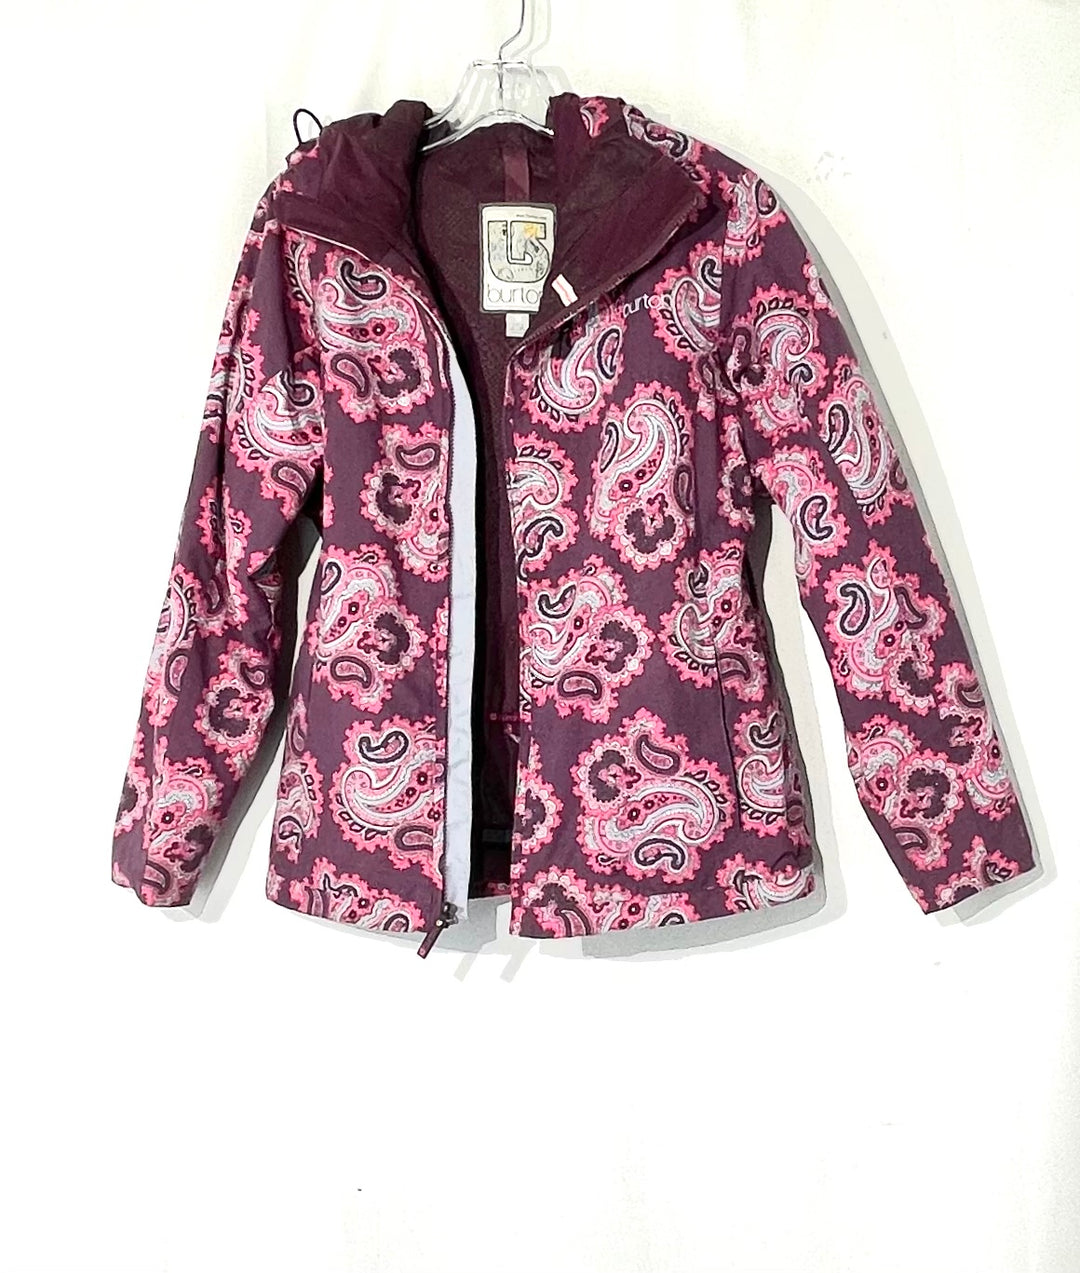 Primary Photo - BRAND: BURTON <BR>STYLE: JACKET <BR>COLOR: PAISLEY <BR>SIZE: M <BR>SKU: 262-26275-73547